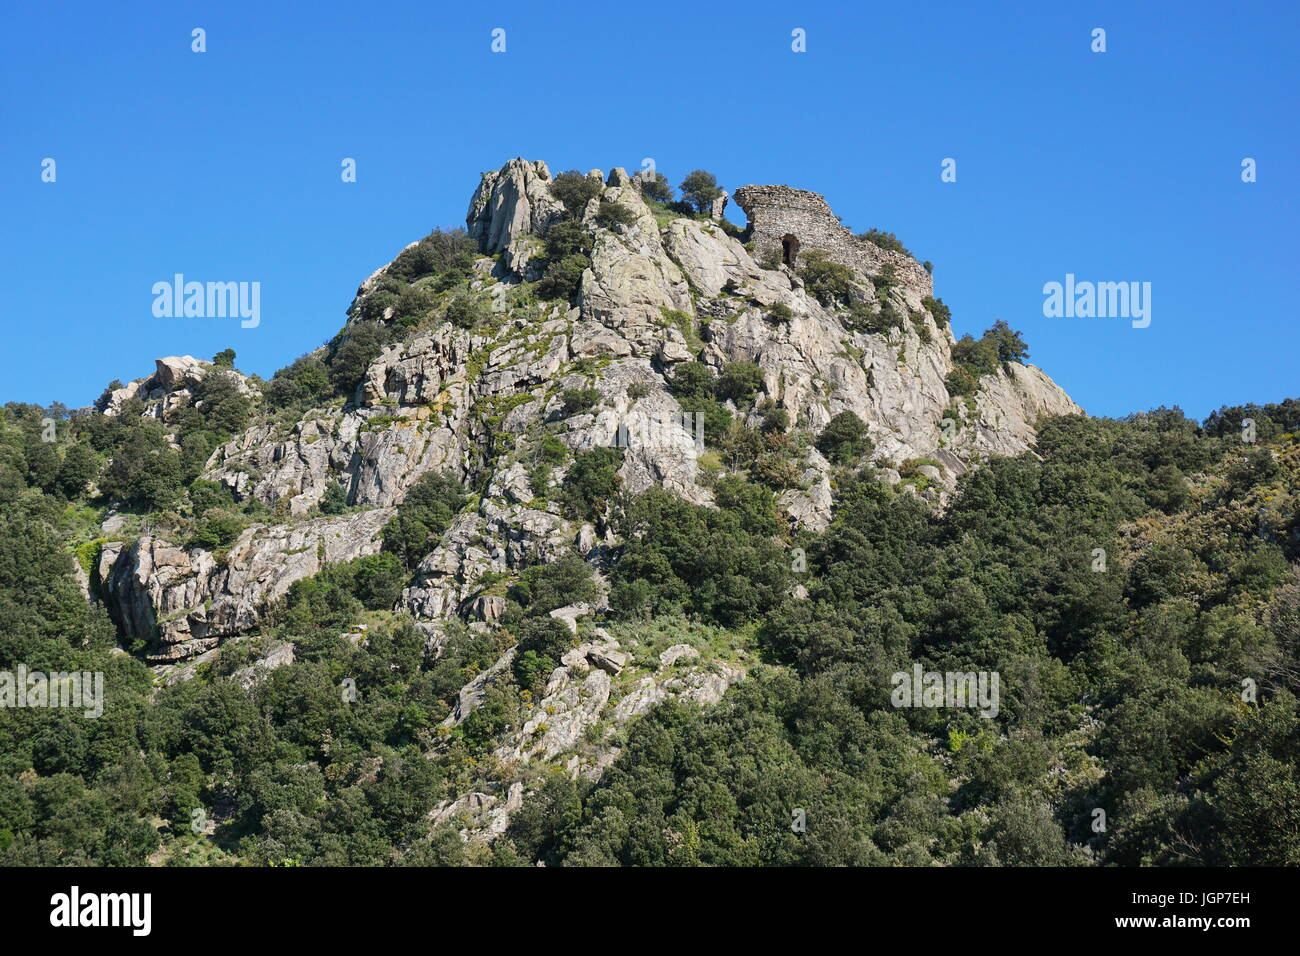 The ruins of the castle of Ultrera located at the top of a steep rocky spur of the Massif des Alberes, Pyrenees - Stock Image